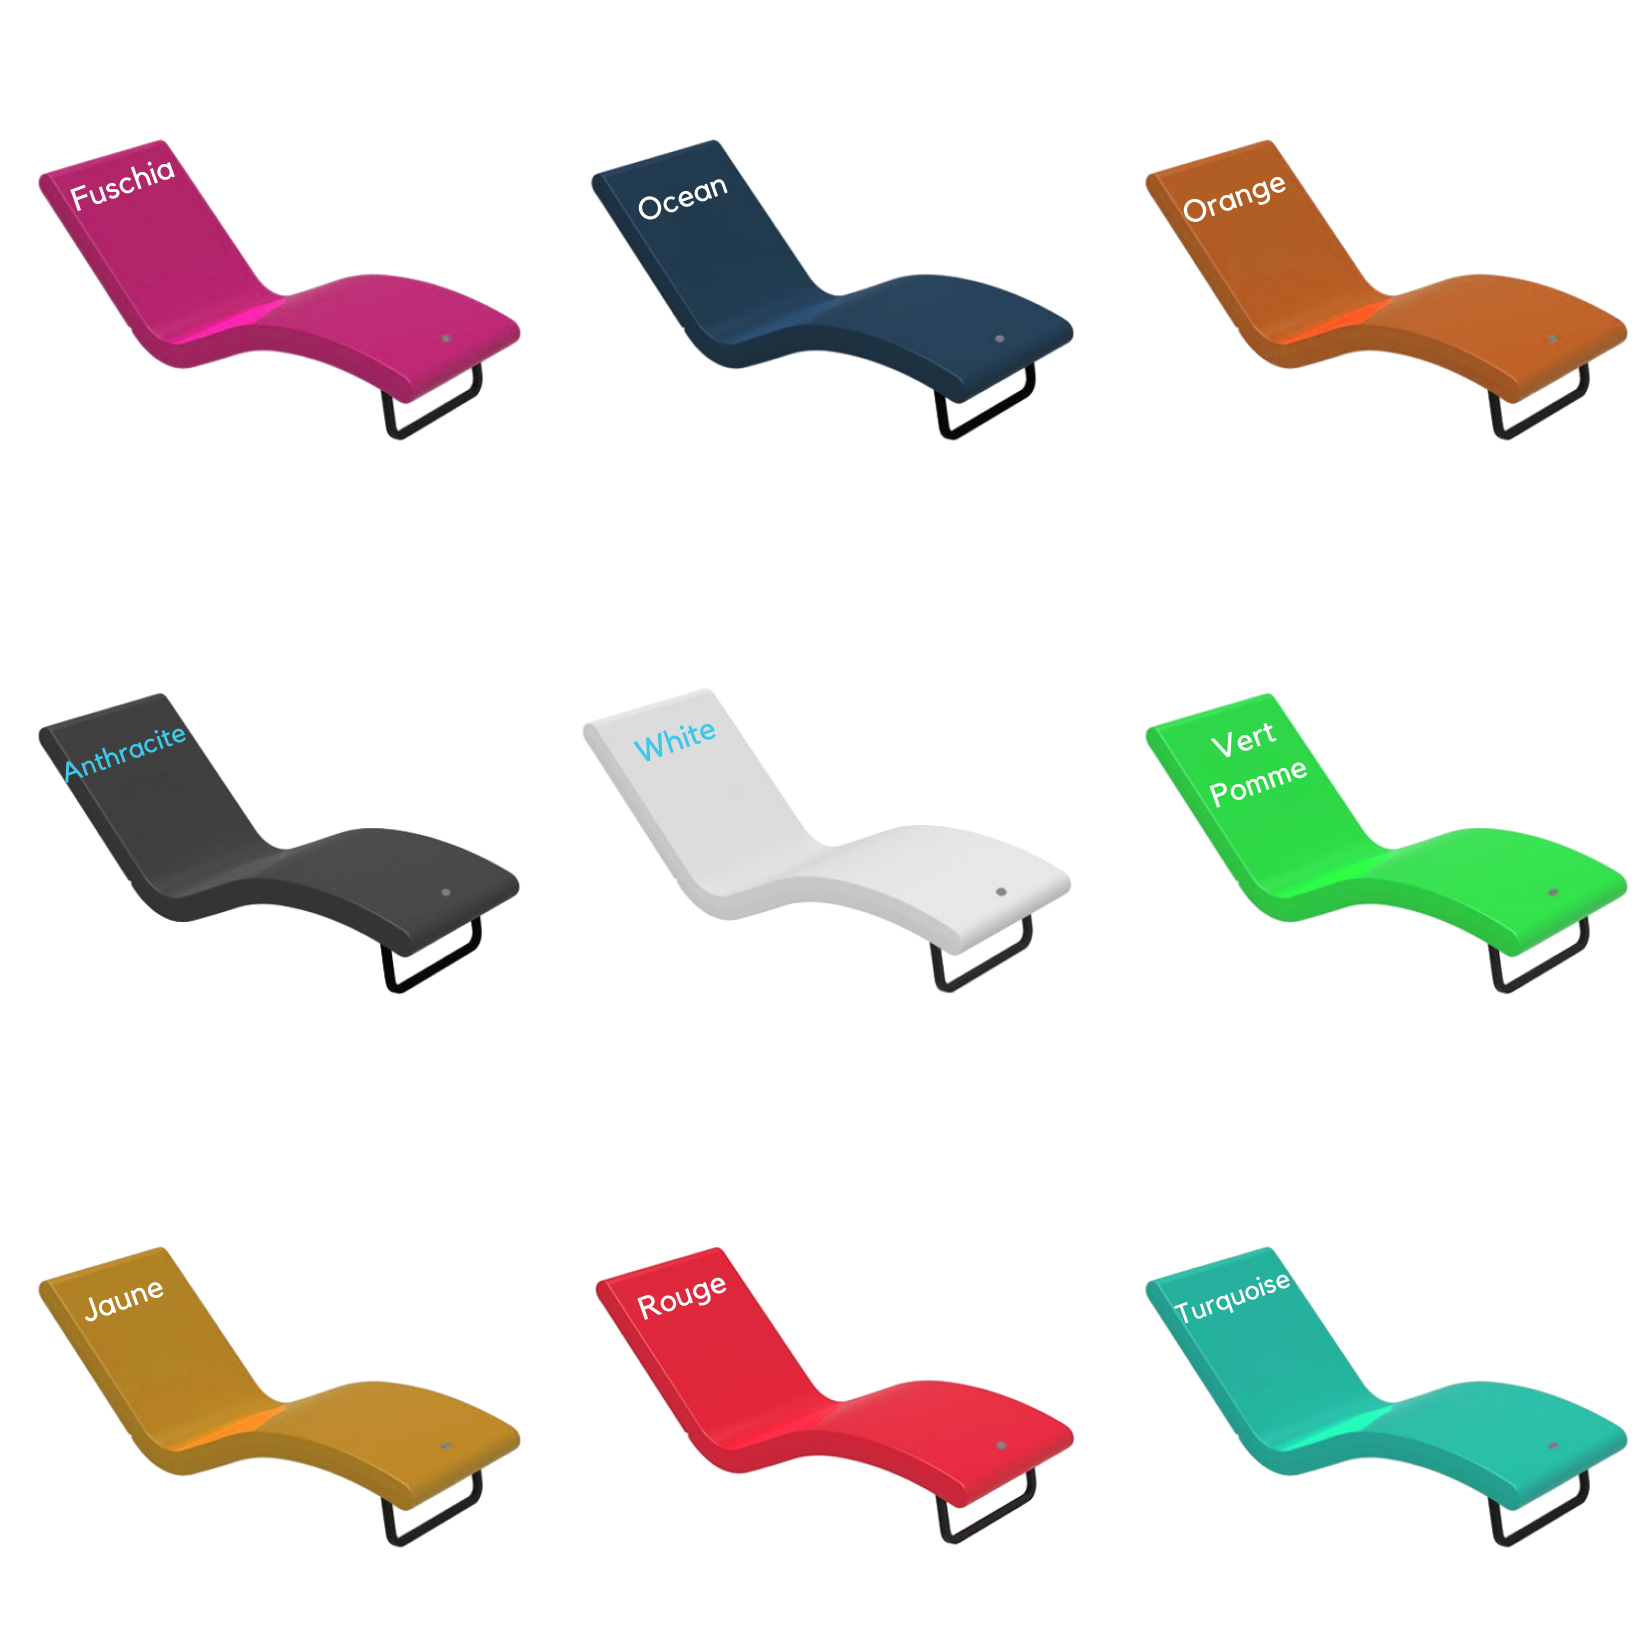 The Siesta Chaise is available in multiple colorways